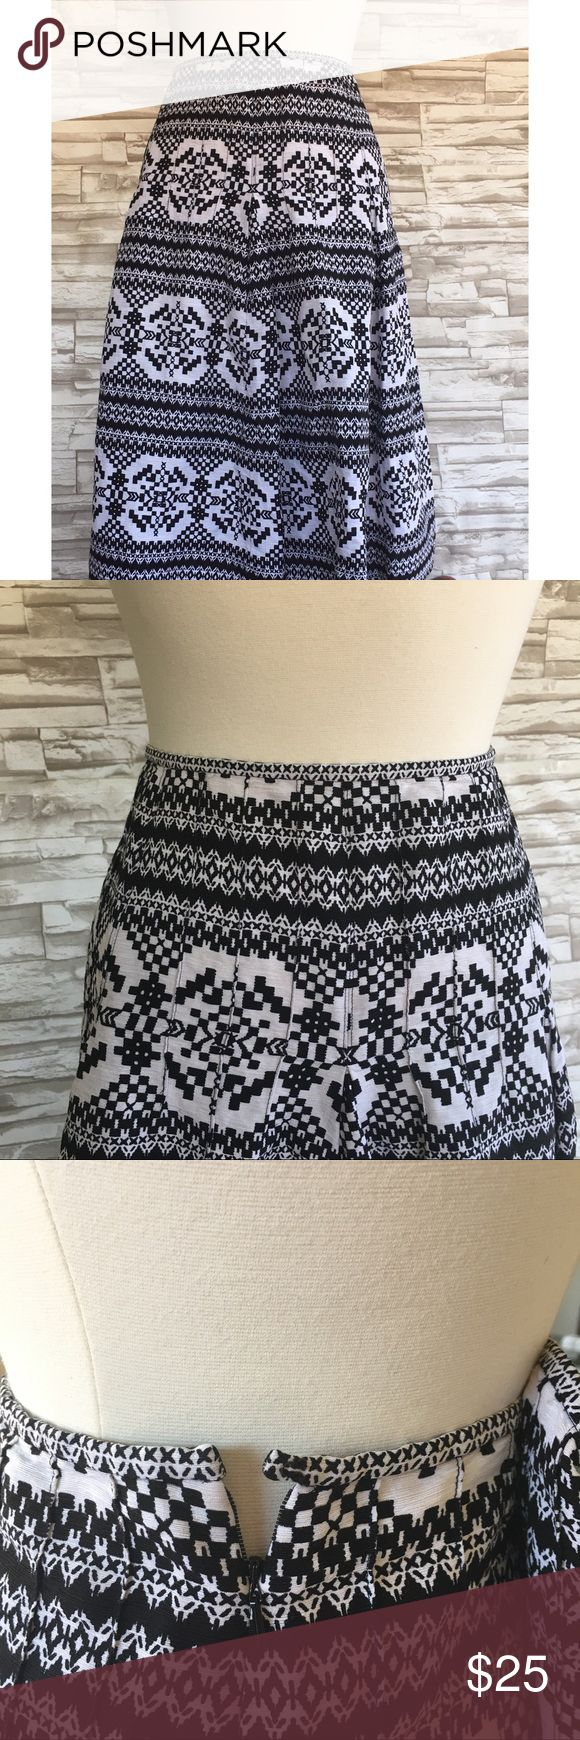 "💜Nine West Skirt Gorgeous!! Black and white A-line skirt from Nine West. Plus size 16. 70% silk 30% linen. Dry clean only. Pleated around the hips. Hook and eye with a zipper closure on the side. Worn only once! Made in China. LAYING FLAT MEASUREMENTS: waist 18"" length 26"" Nine West Skirts A-Line or Full"